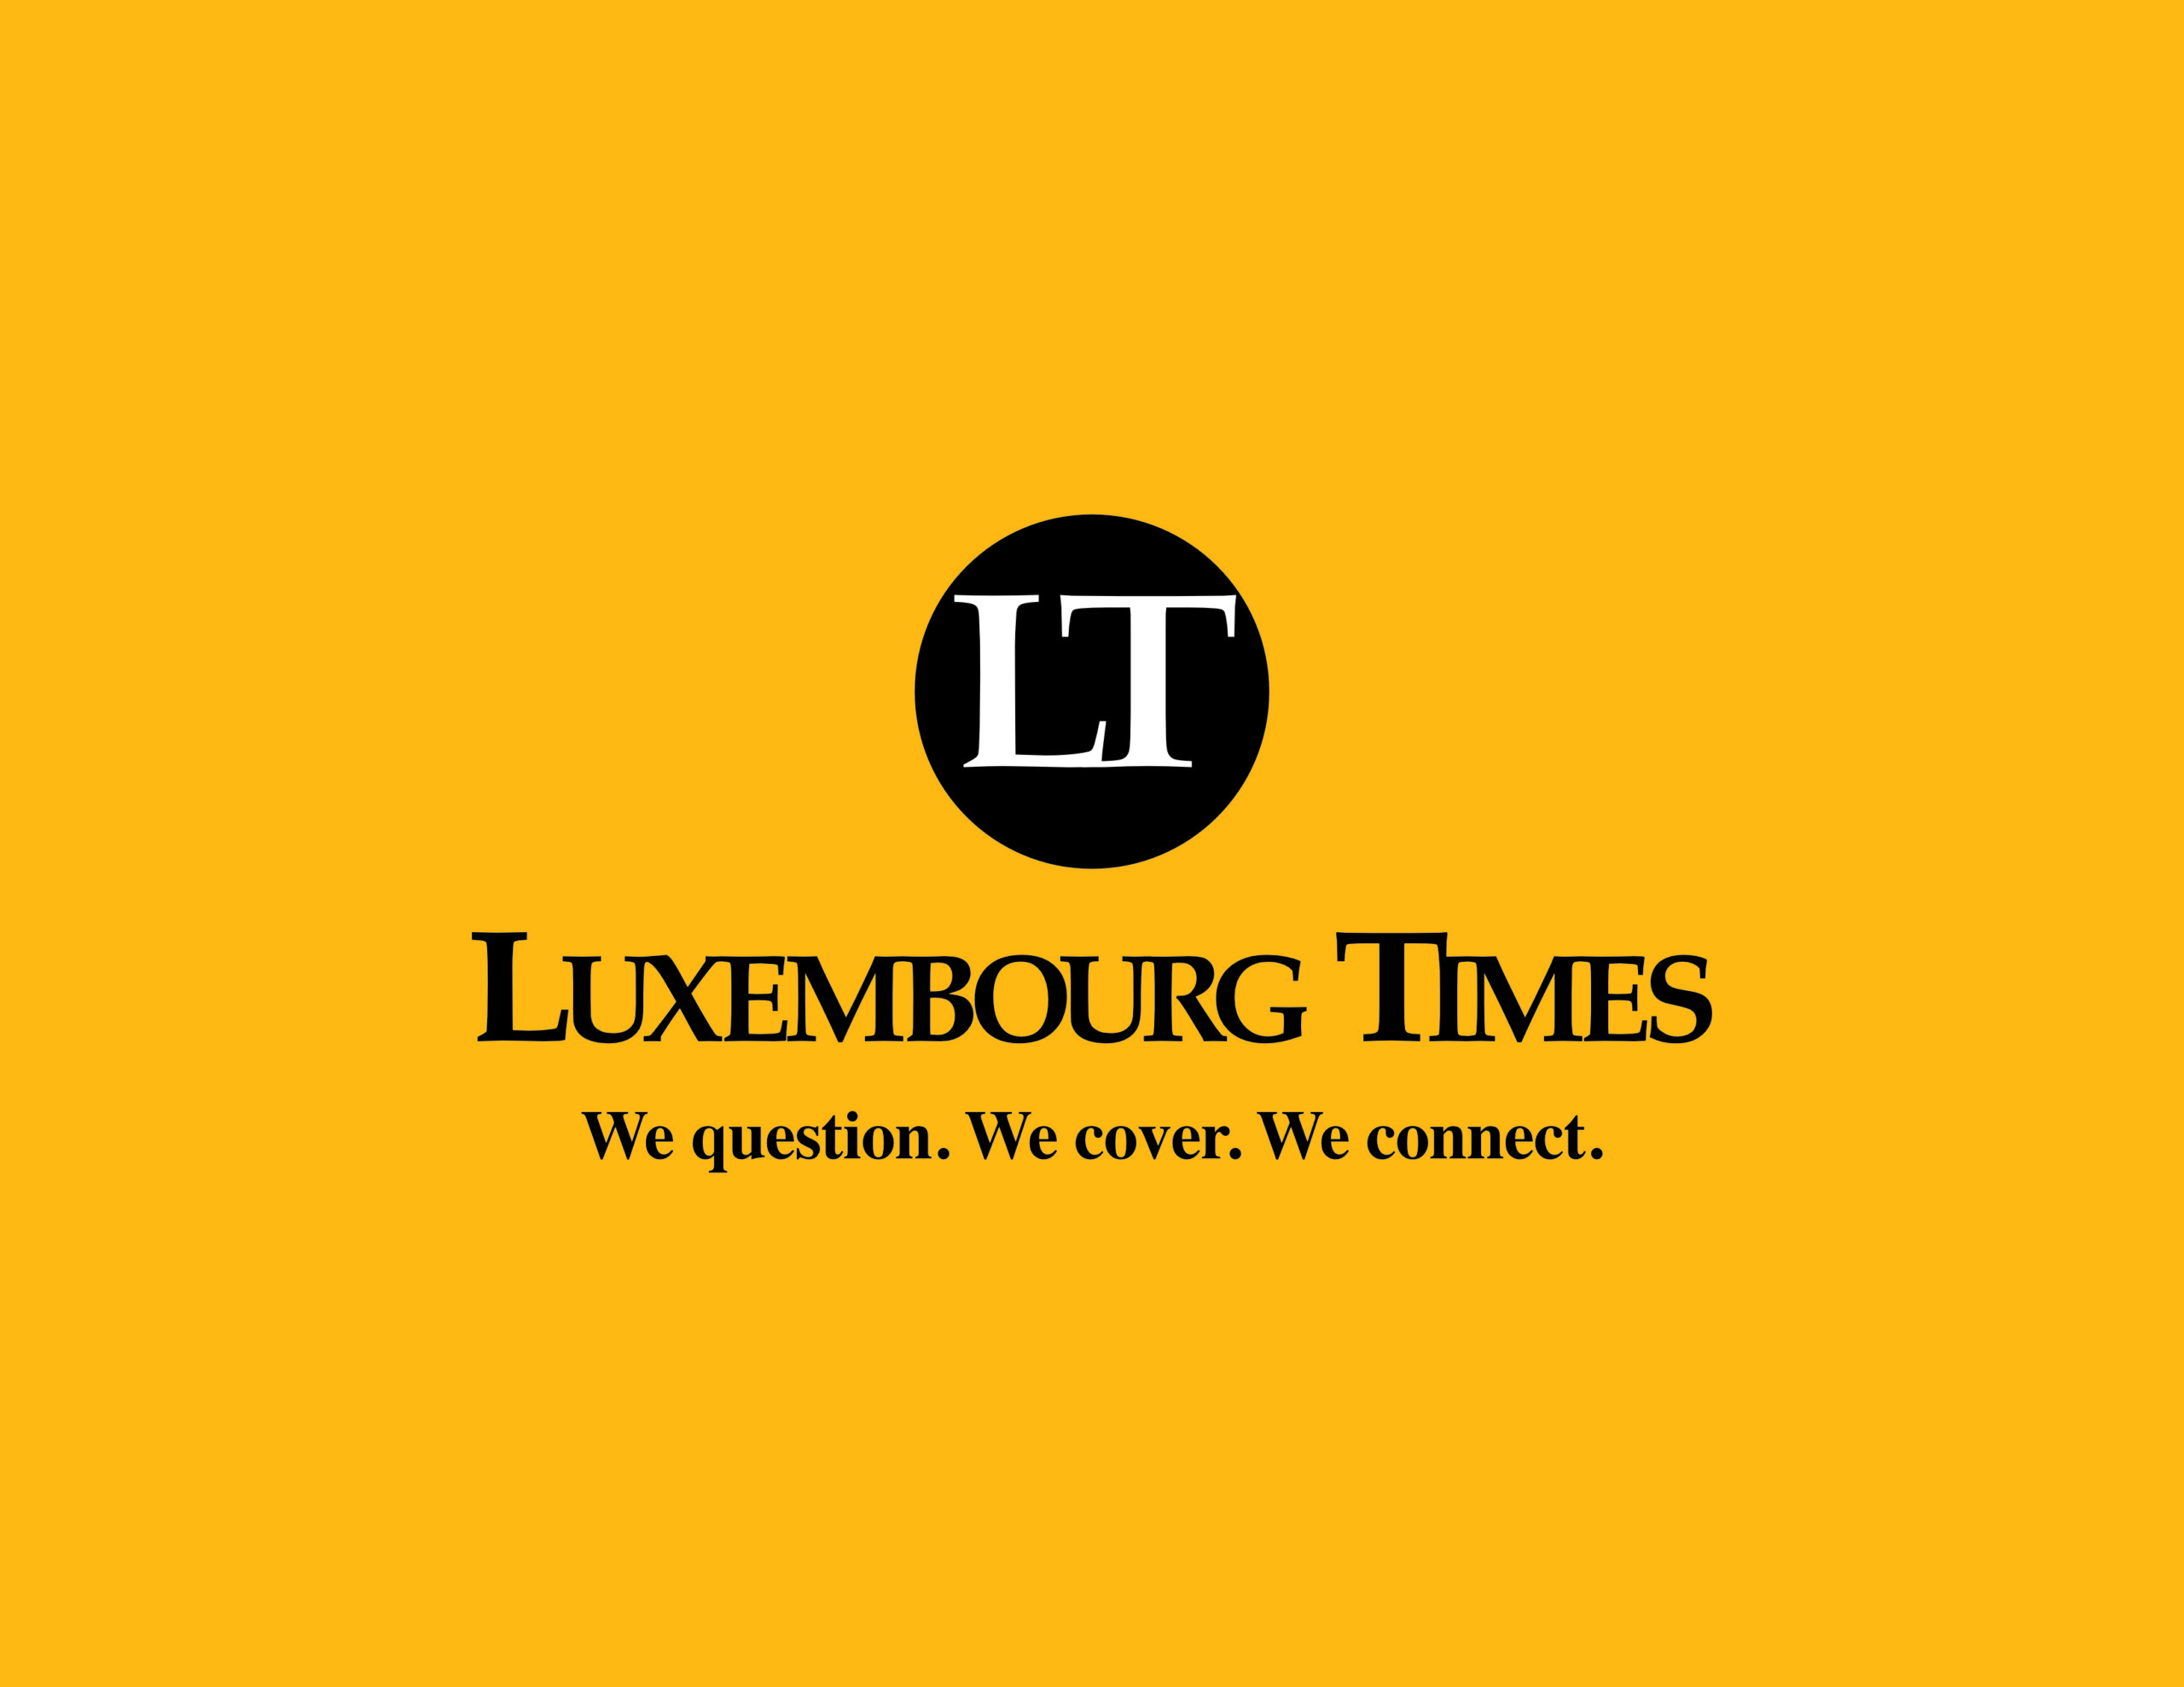 Luxembourg Times